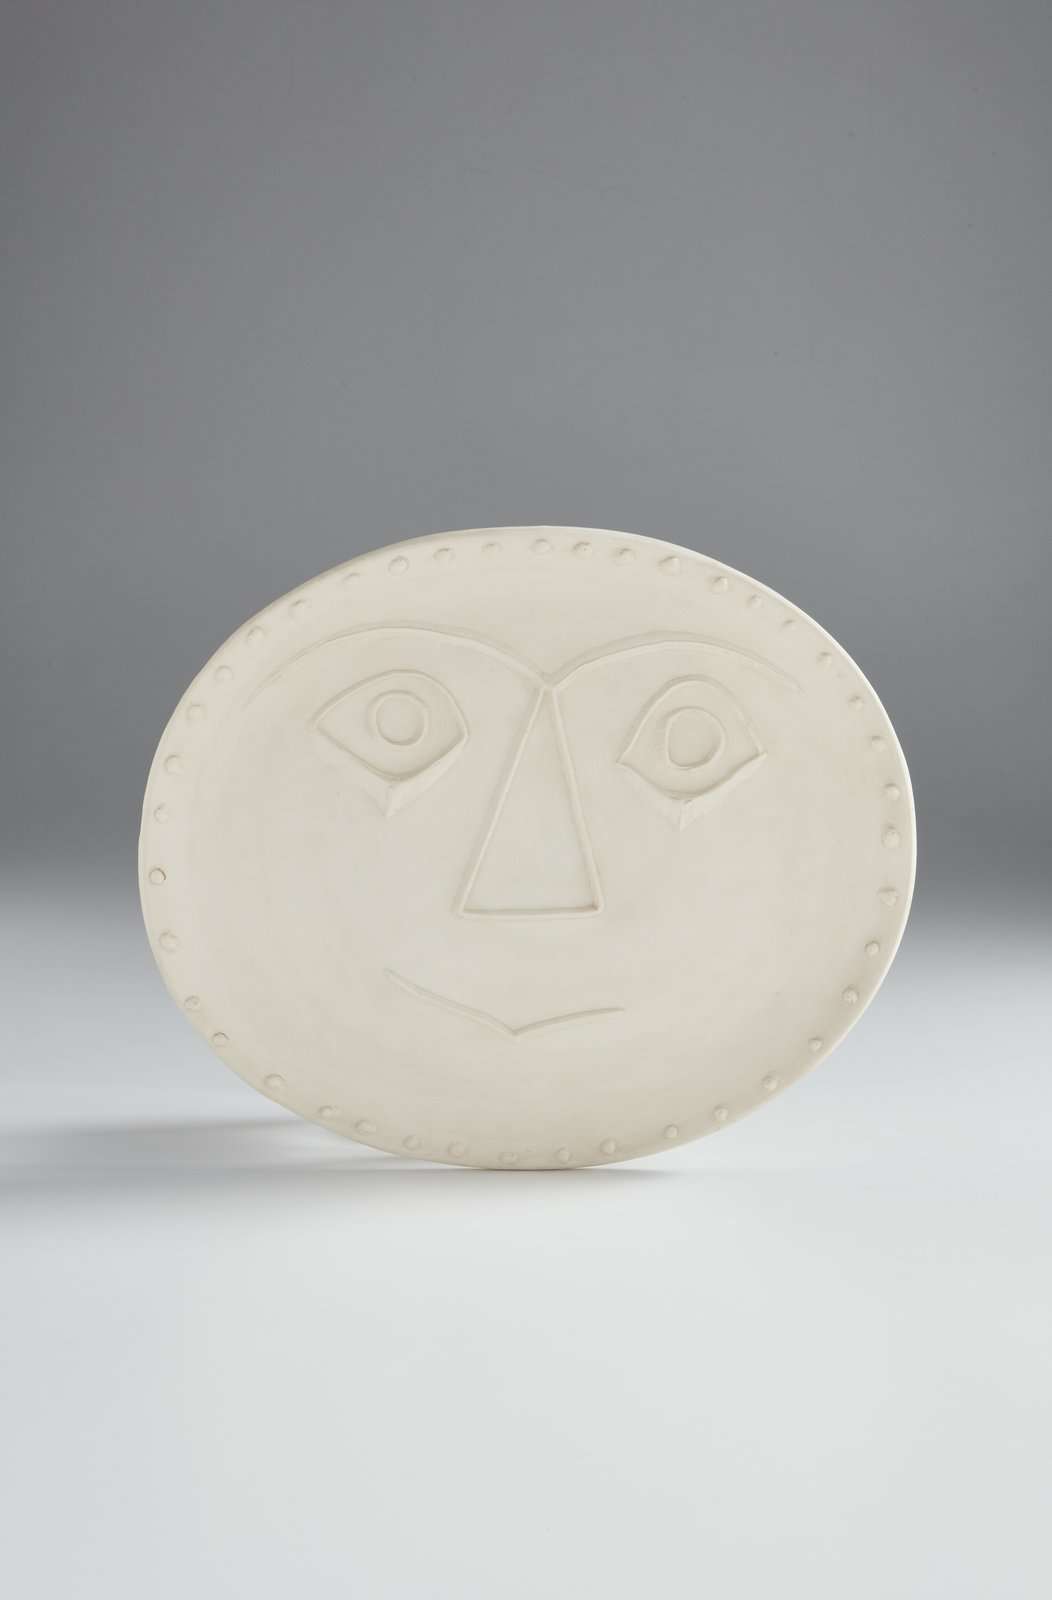 Geometric face by Pablo Picasso